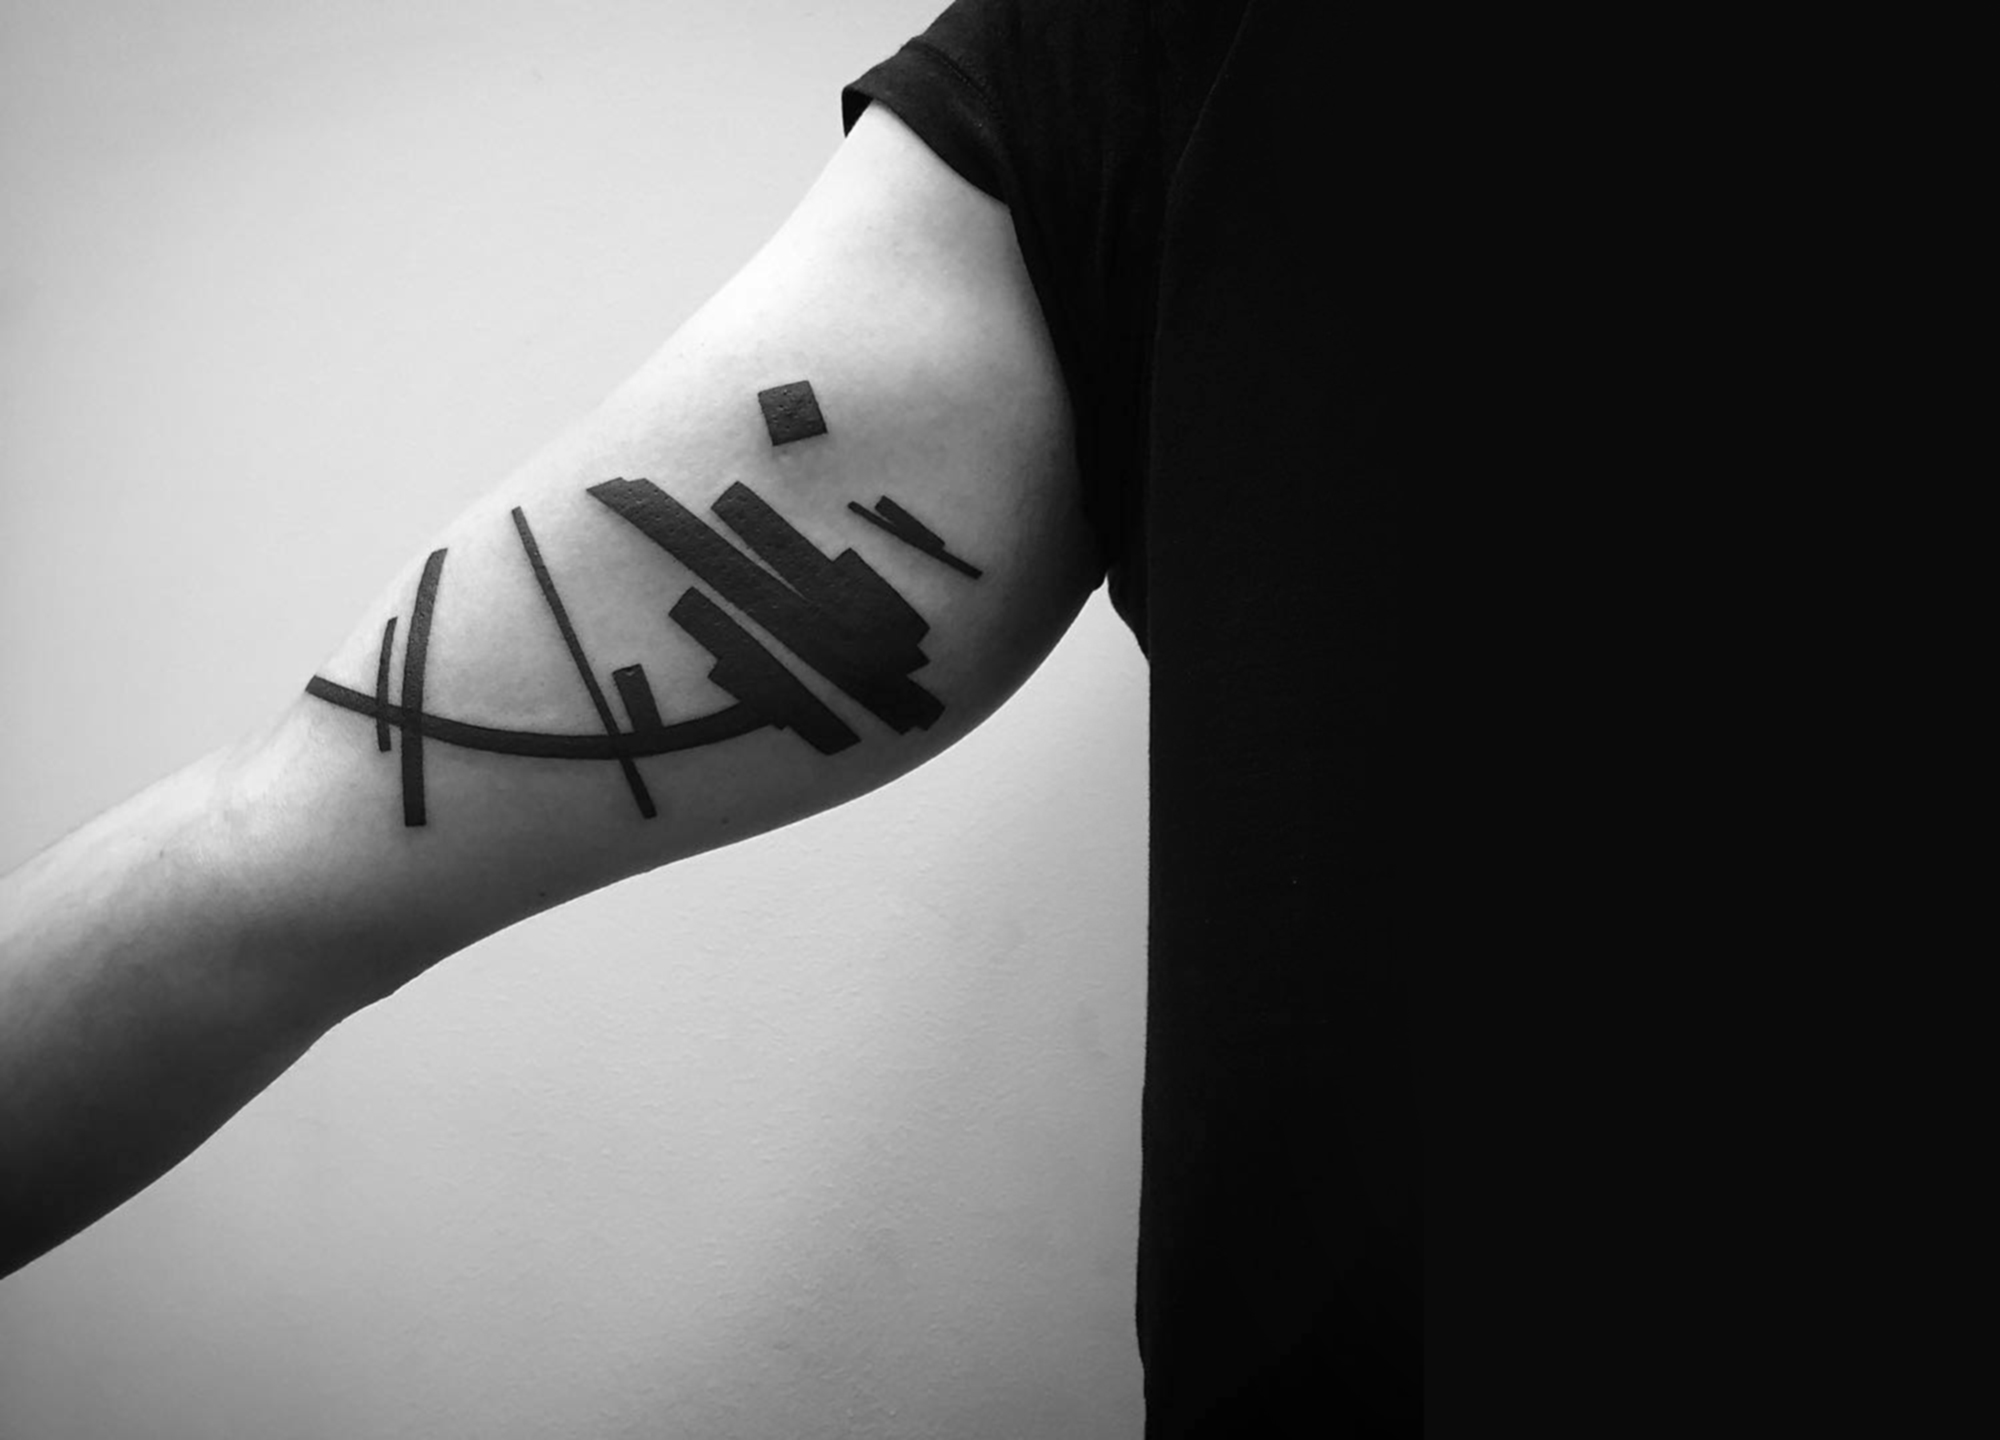 abstract tattoo on arm by stanislaw wilczynski